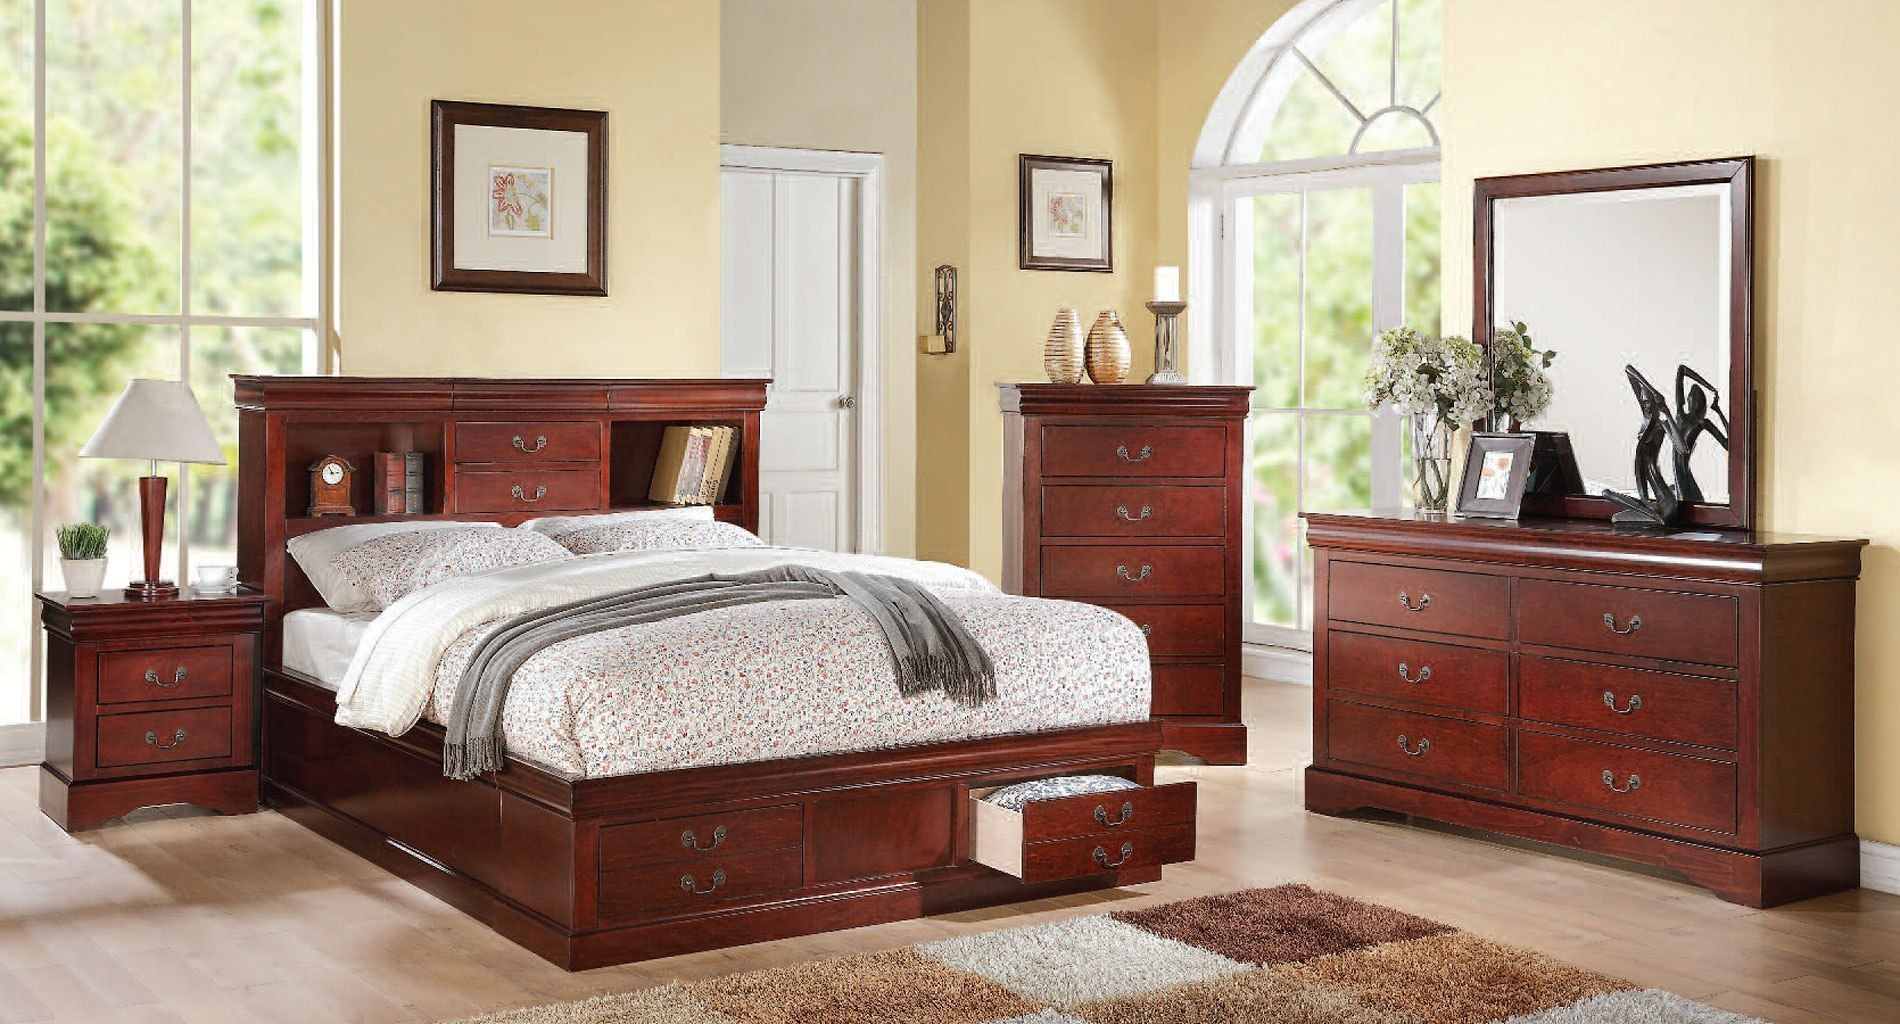 louis philippe iii bookcase bedroom set cherry bedroom 15928 | 24380q br set 1